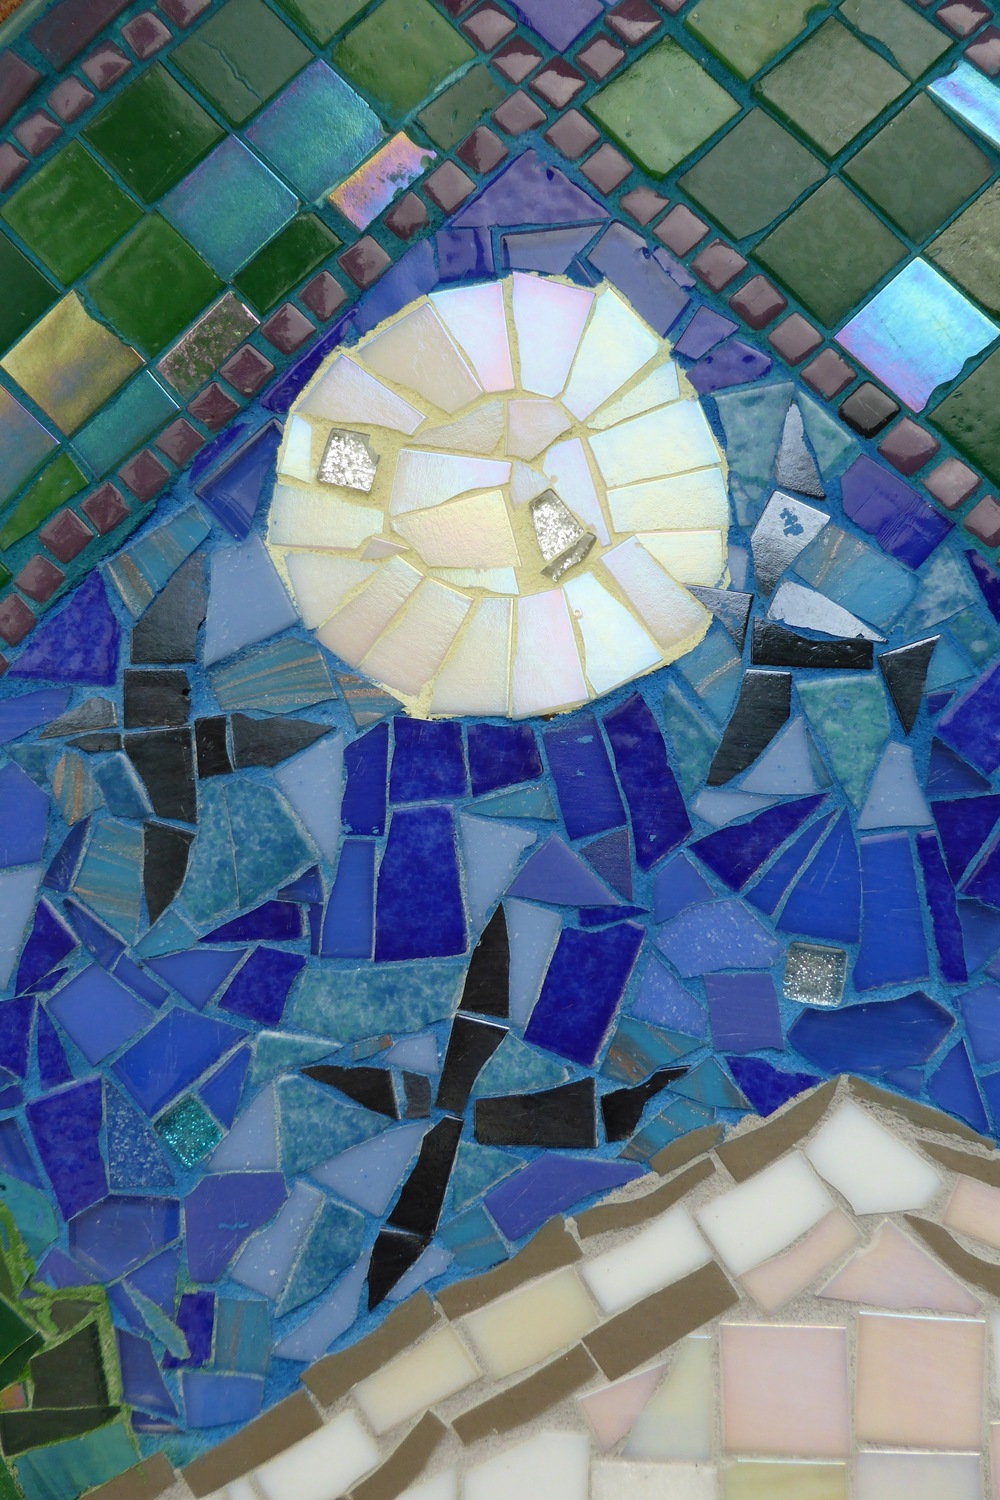 A close-up detail of the mosaic.